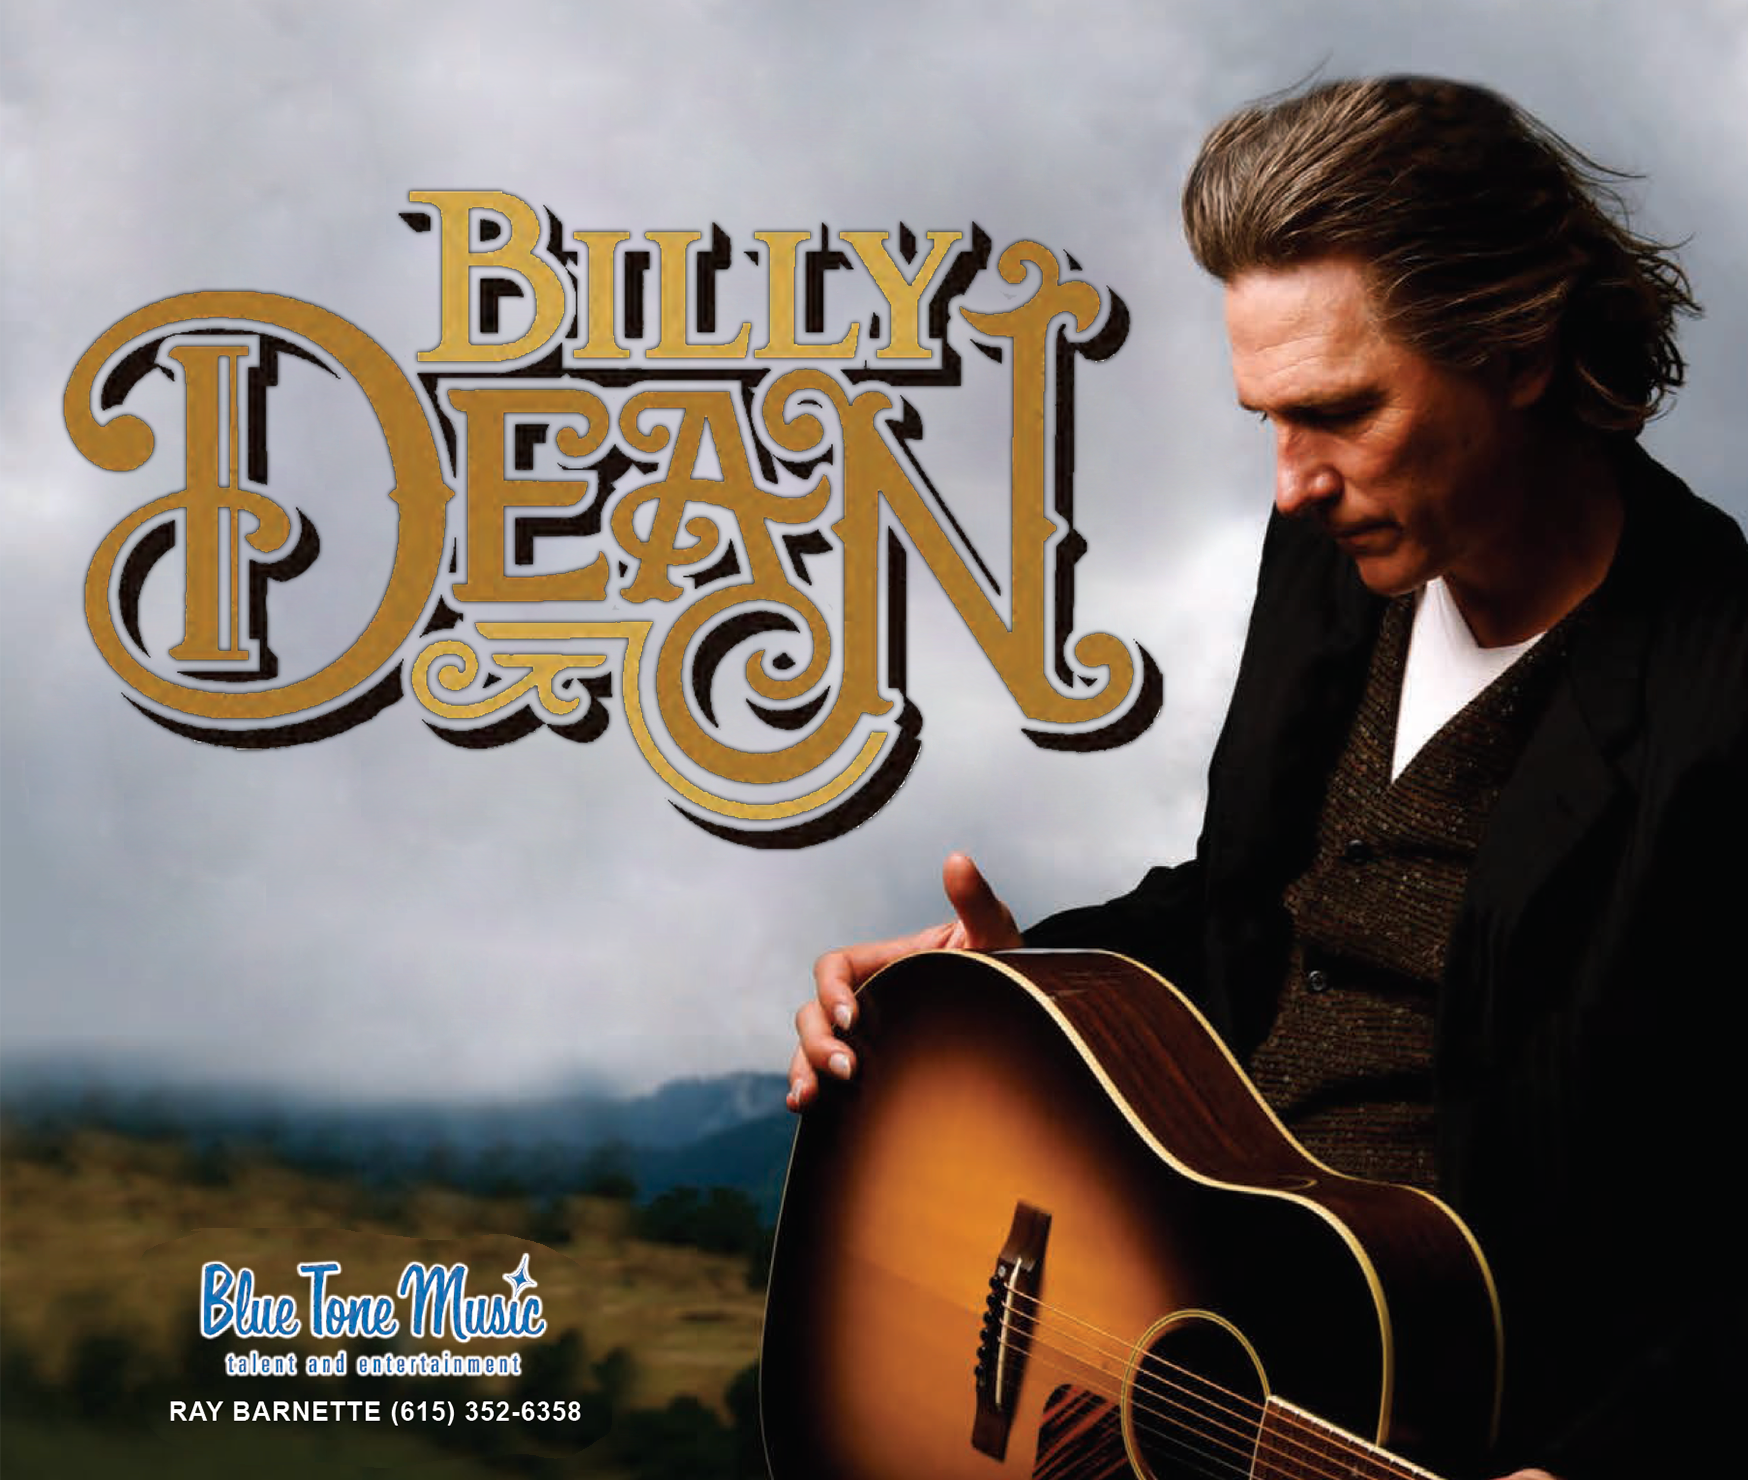 Billy Dean | Players Circle Theater